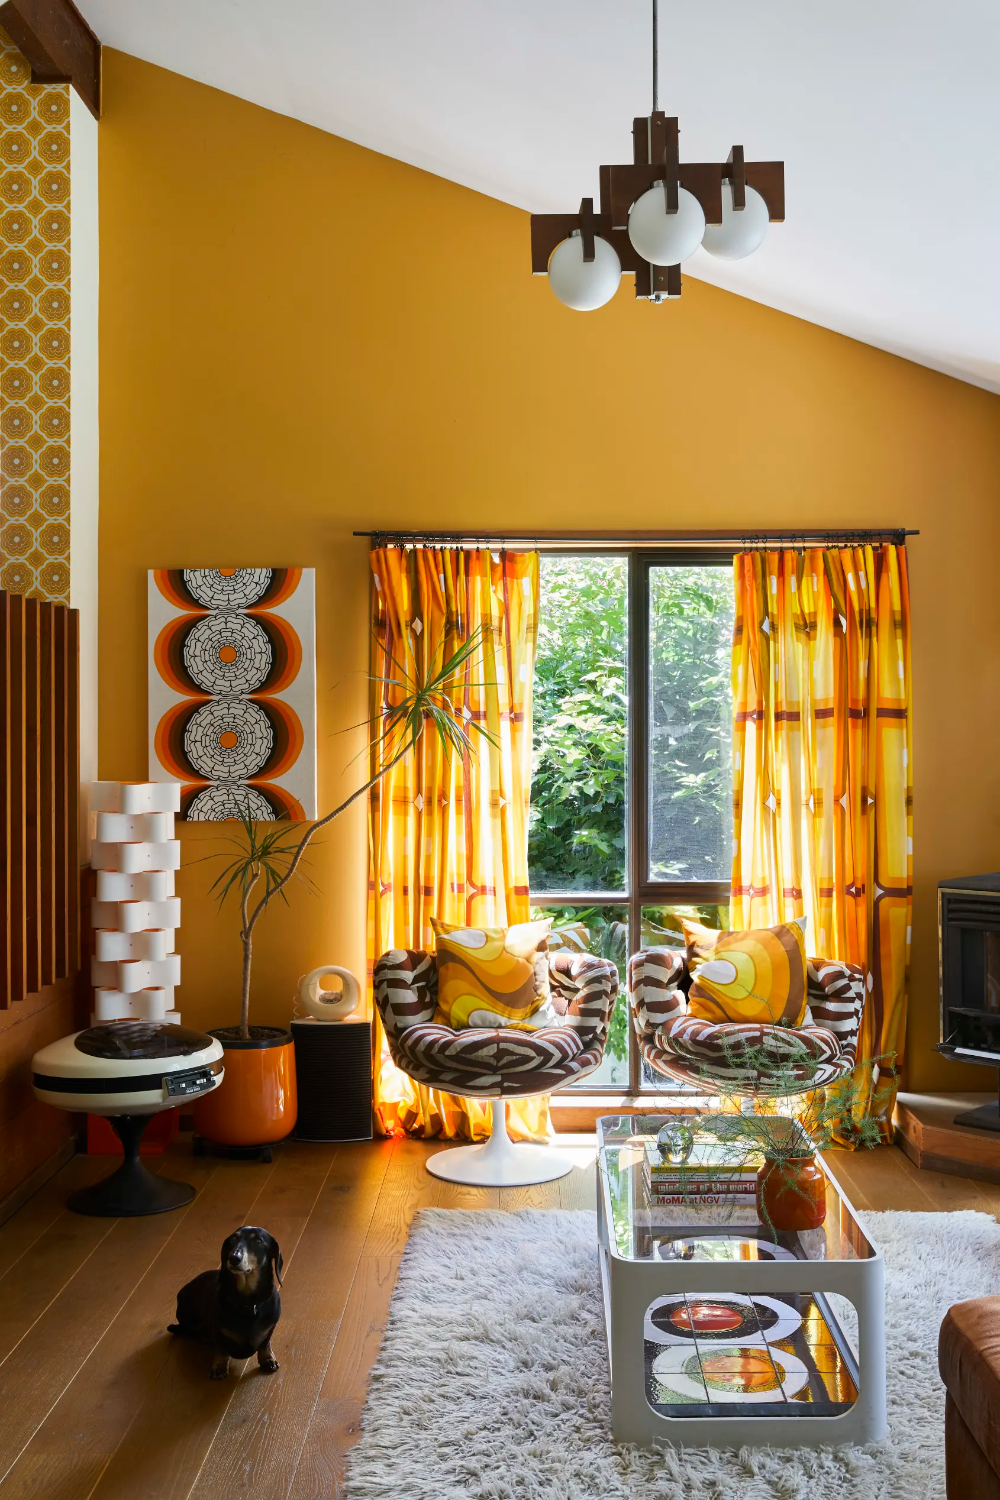 space age meets scandi and shag rugs in this groovy